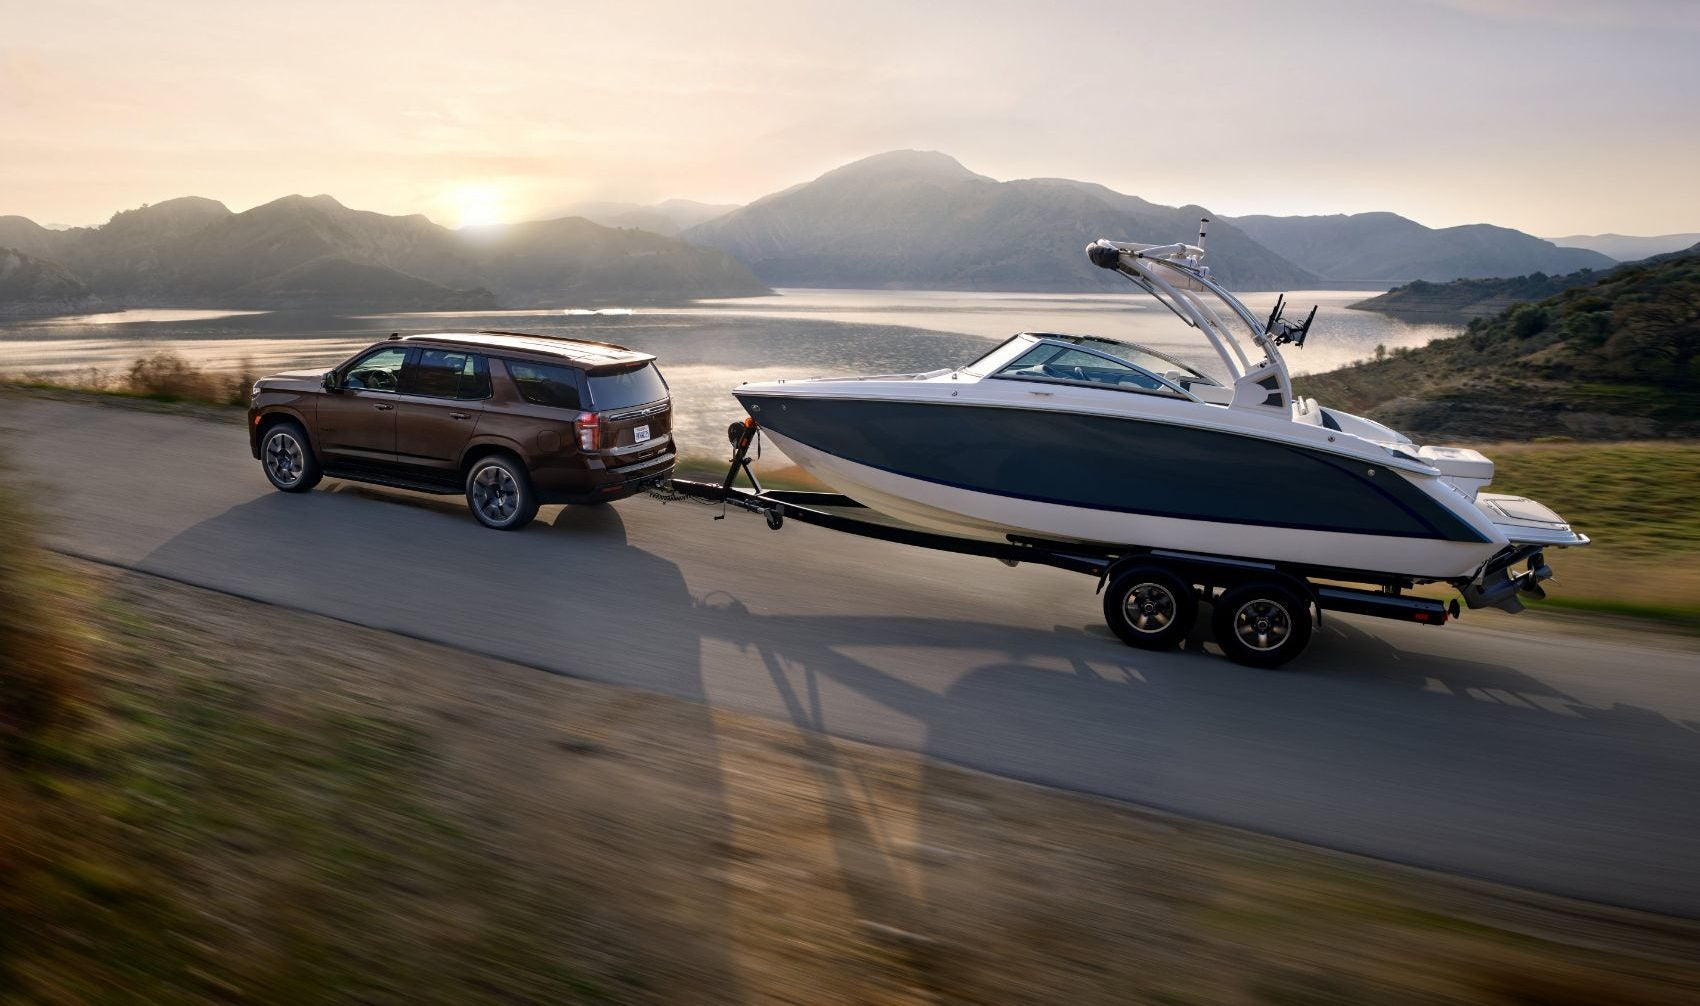 2022 Chevy Tahoe & Suburban Quick Overview: Engine Specs, Interior Tech, Safety Features & More